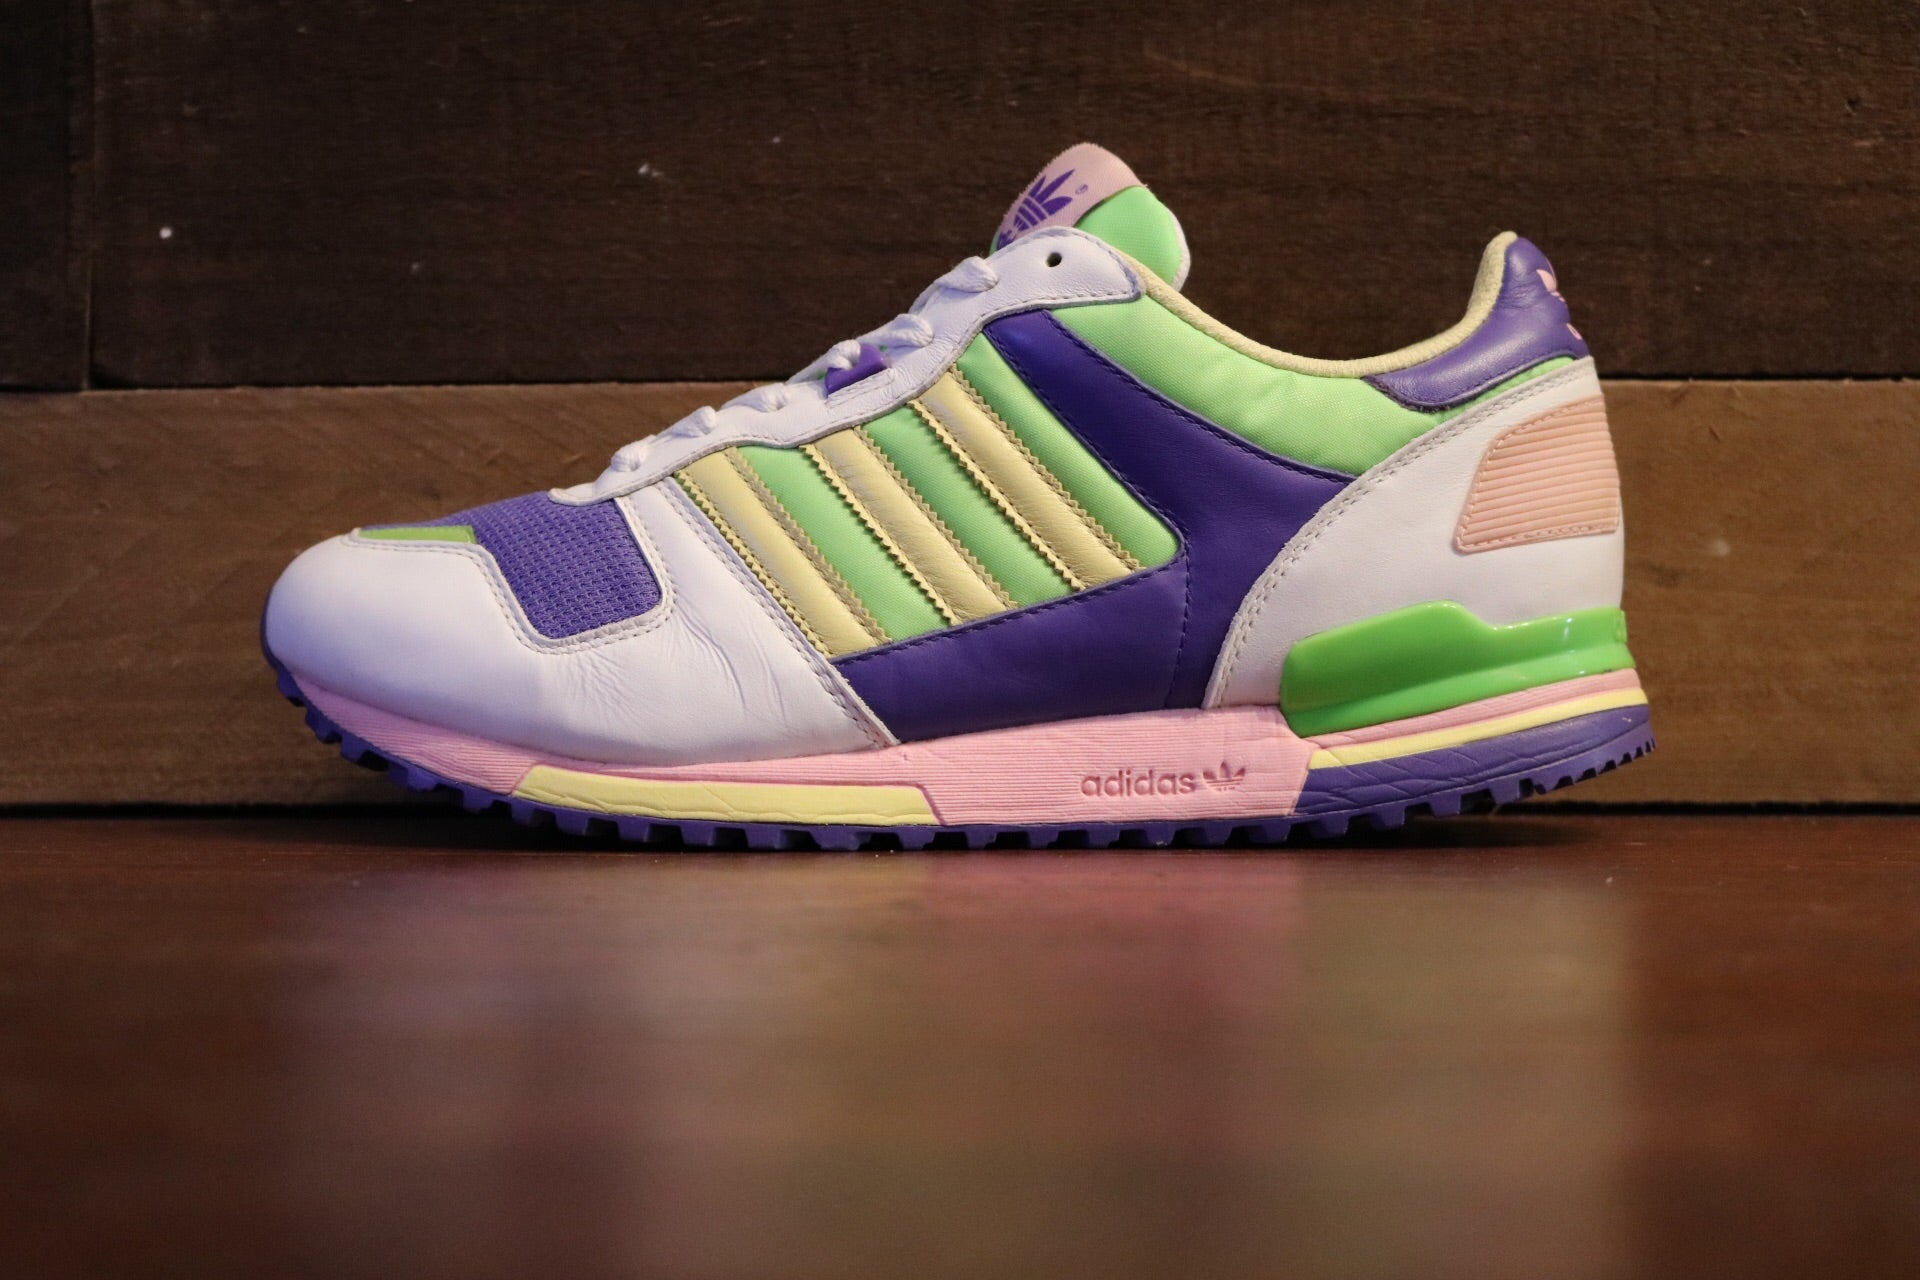 Adidas ZX700 Easter*